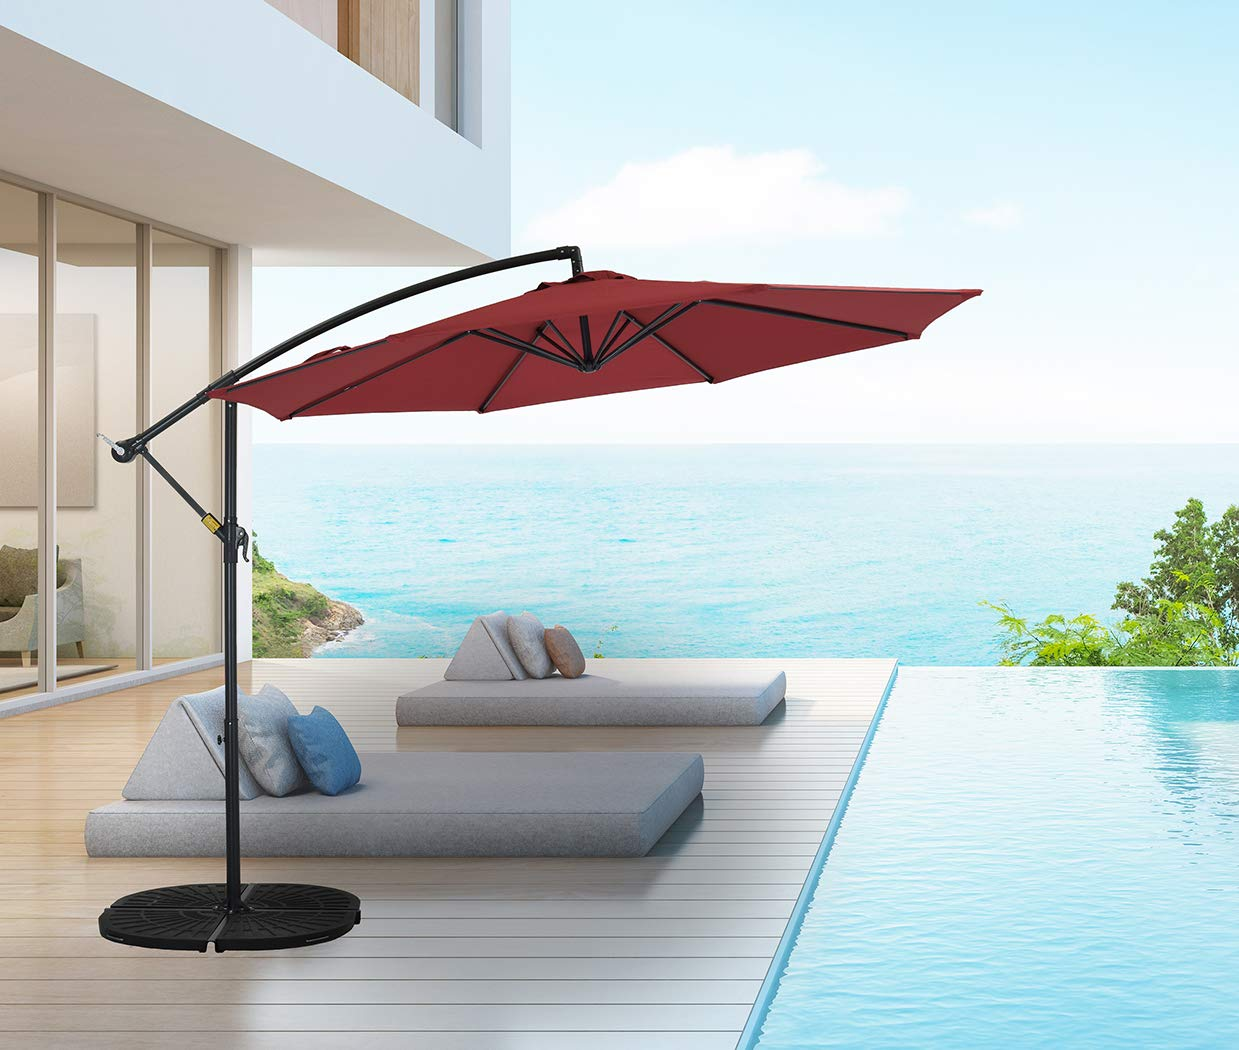 Patio Watcher 10ft Offset Hanging Patio Umbrella Adjustable Cantilever Umbrella Outdoor Market Umbrella with Crank Cross Base for Backyard, Garden, Lawn and Pool – Red